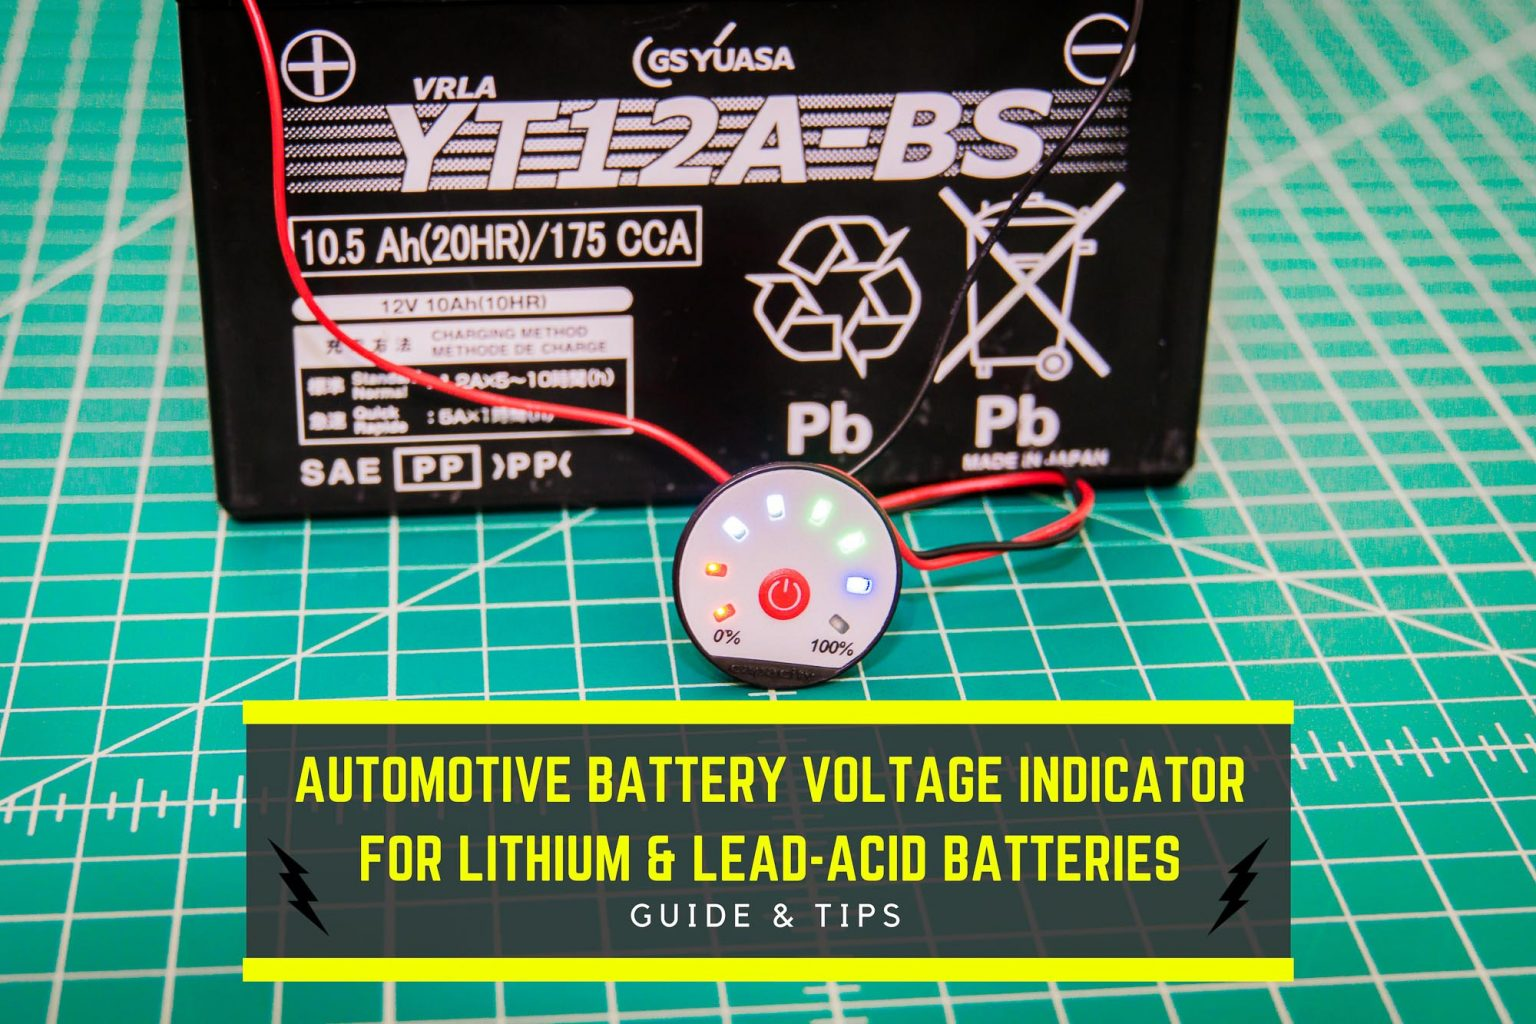 Automotive Battery Voltage Indicator Guide Lithium Lead Acid